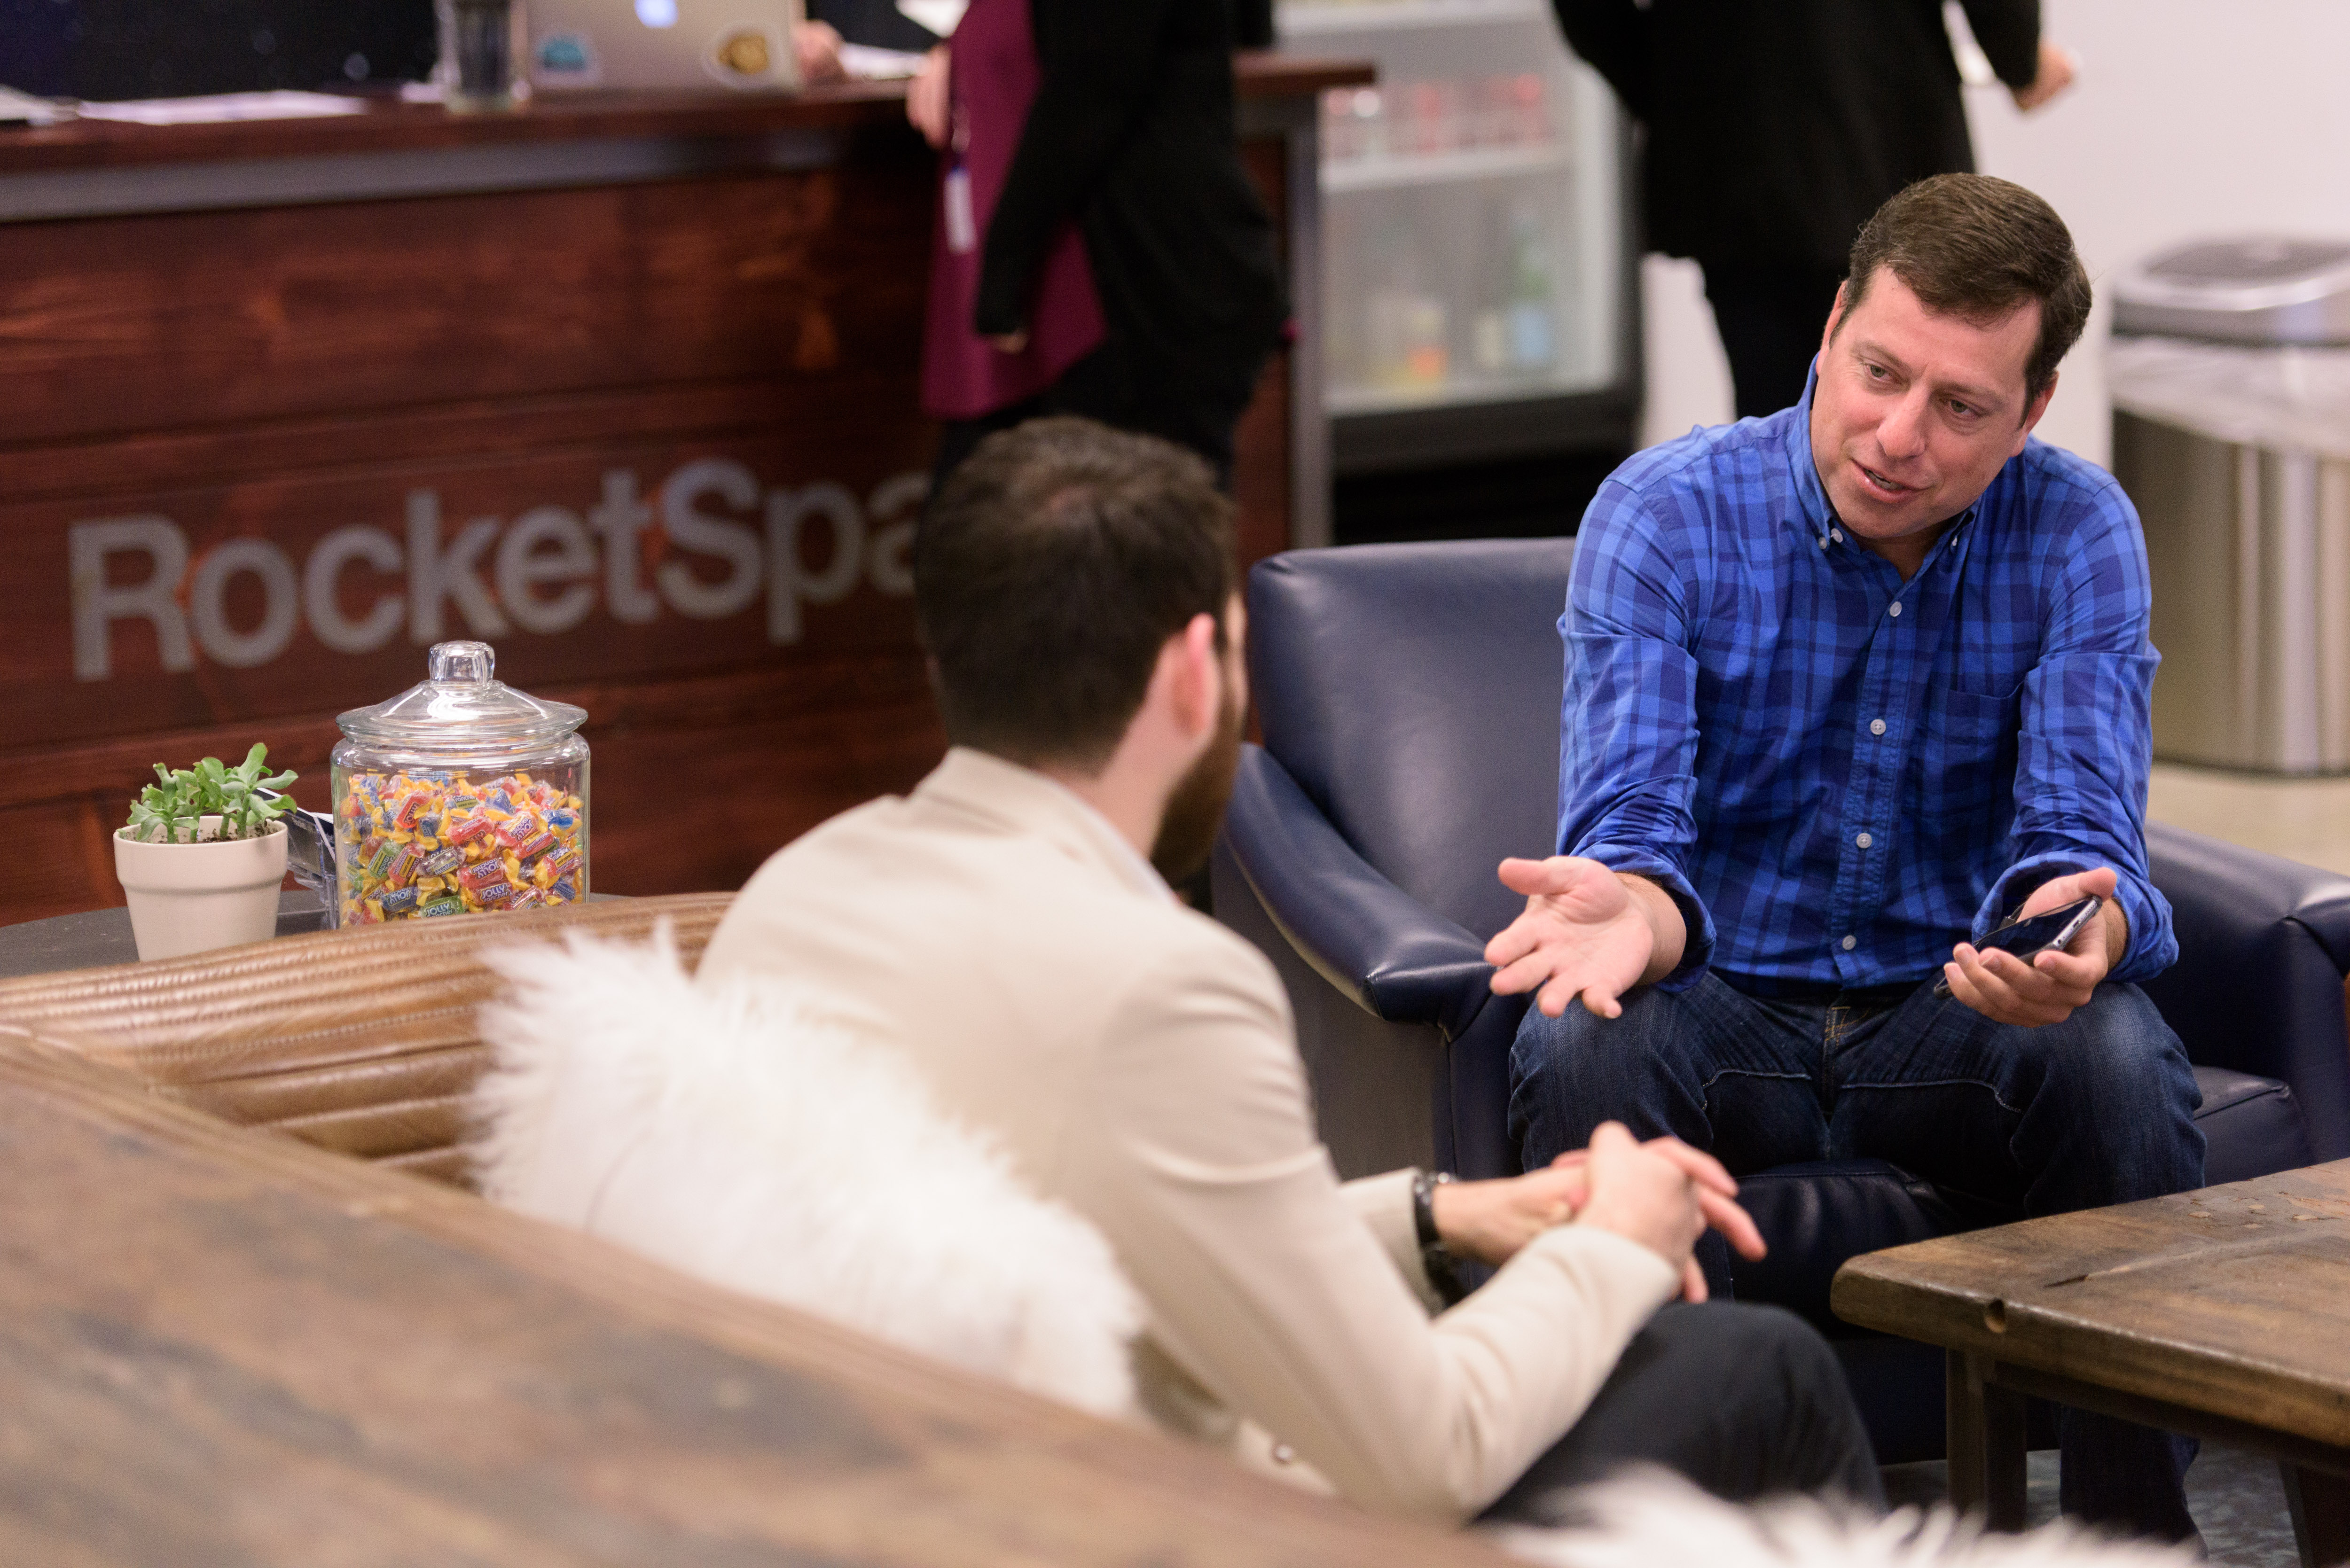 2535_RocketSpace_San_Francisco_Event_and_Executive_Portrait_Photography-1.jpg